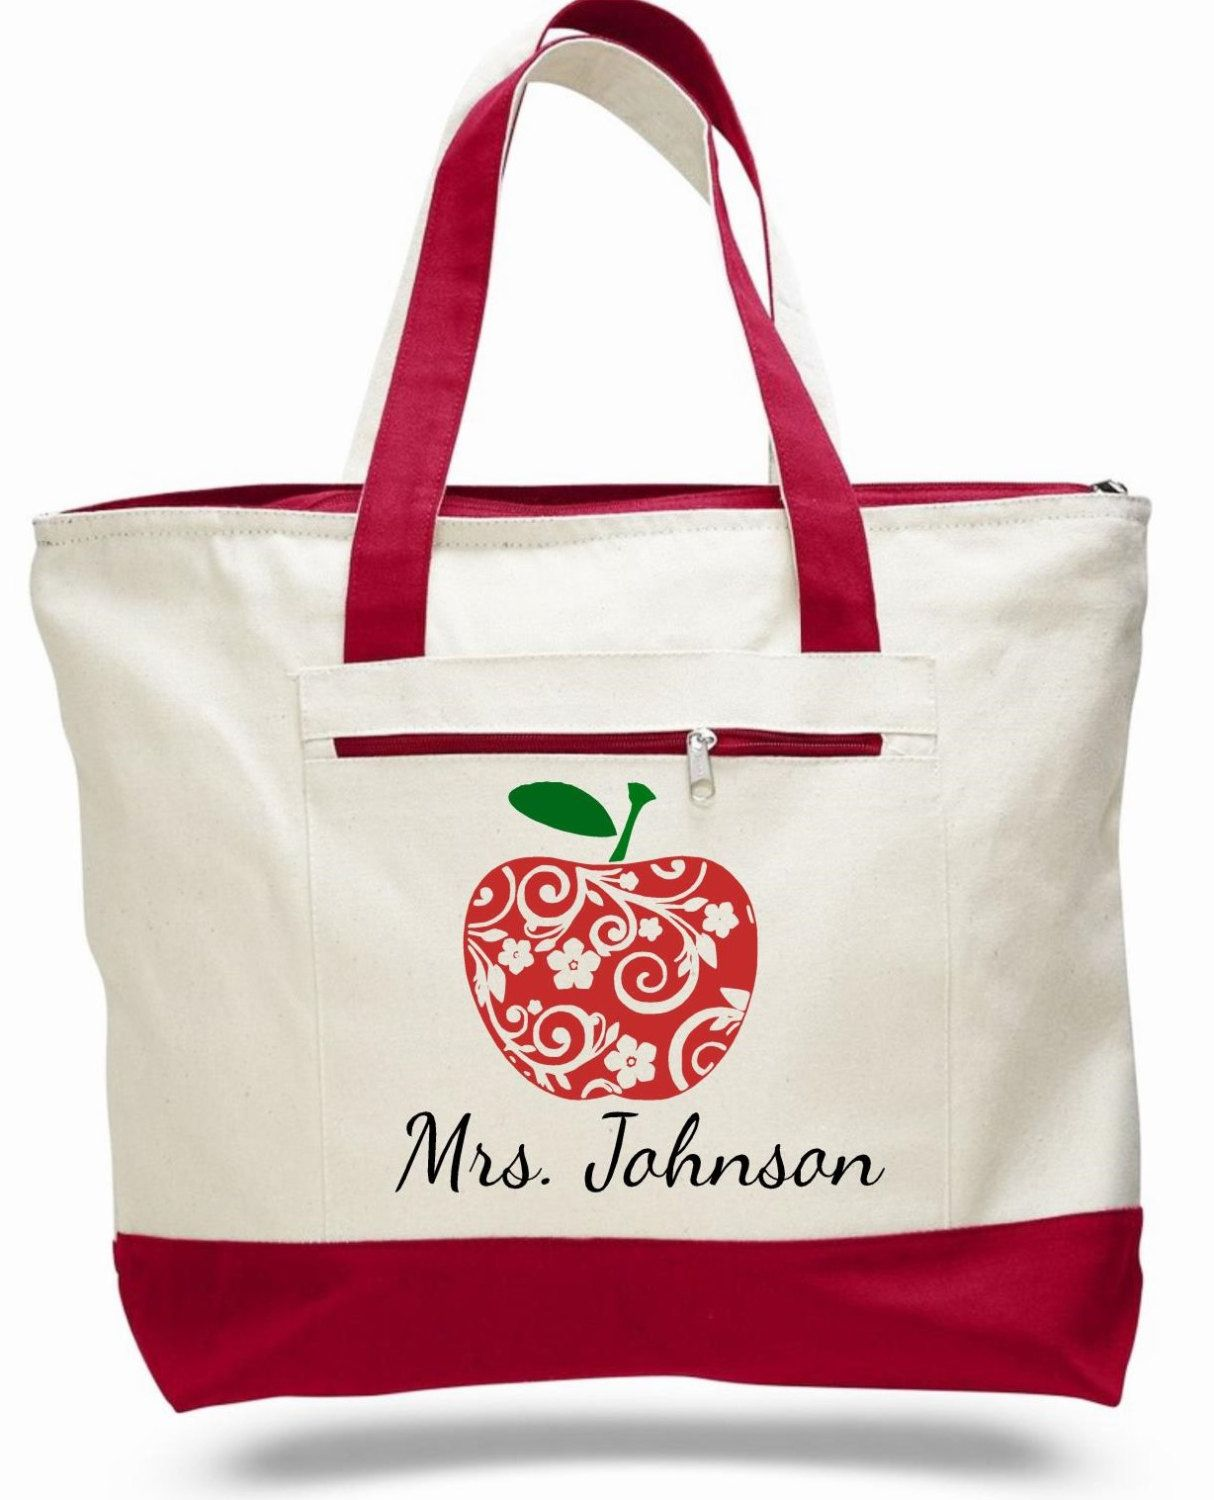 Teacher Bag Tote Le Personalized Name School Gift Canvas Zippered By Elainescrafts On